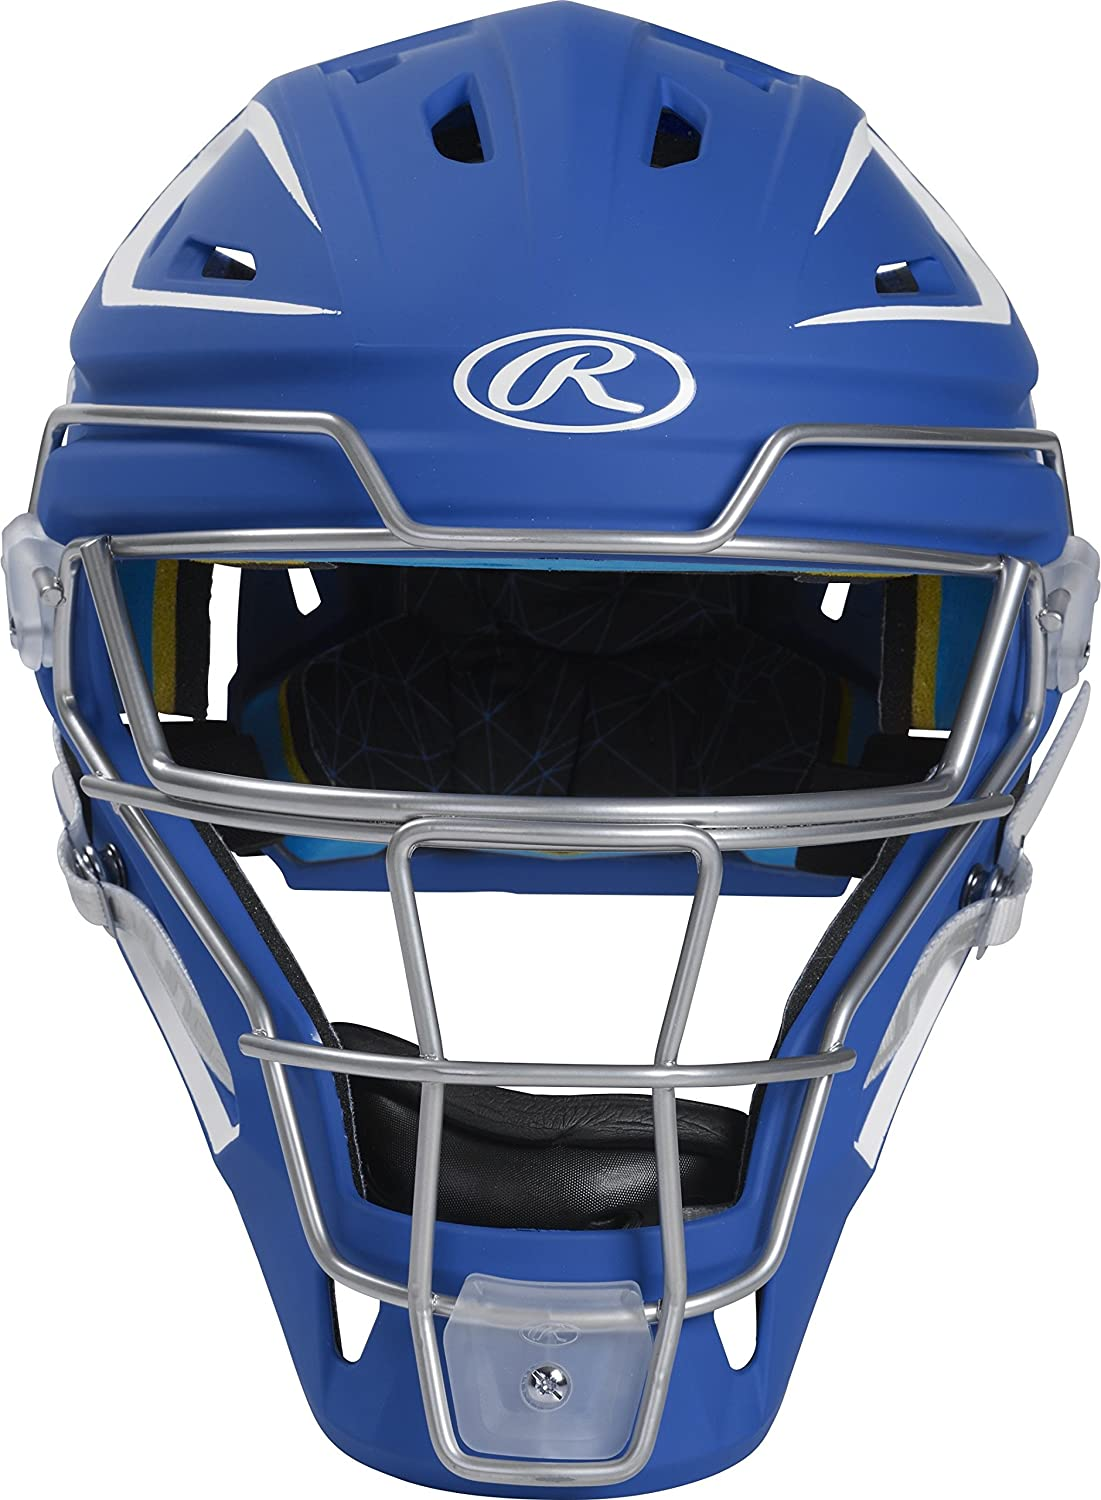 Rawlings CHMACH-R7/W7-SR 2-Tone Matte Catcher's Helmet, Royal/White Rawlings Sporting Goods